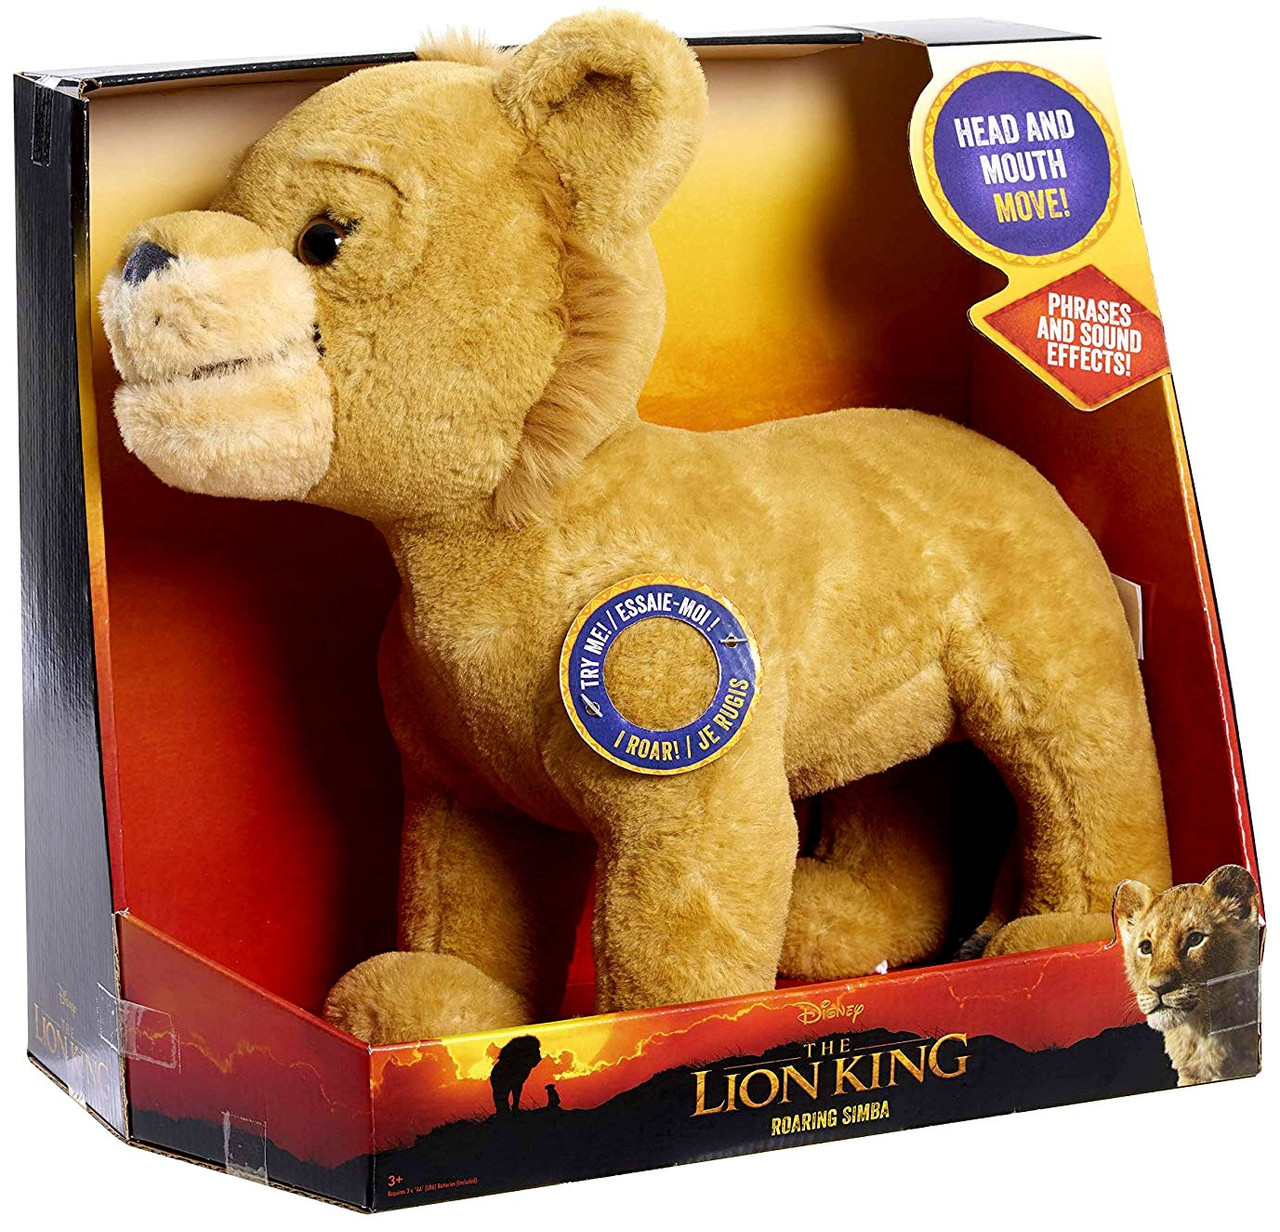 Disney The Lion King 2019 Roaring Simba 12 Inch Feature Plush